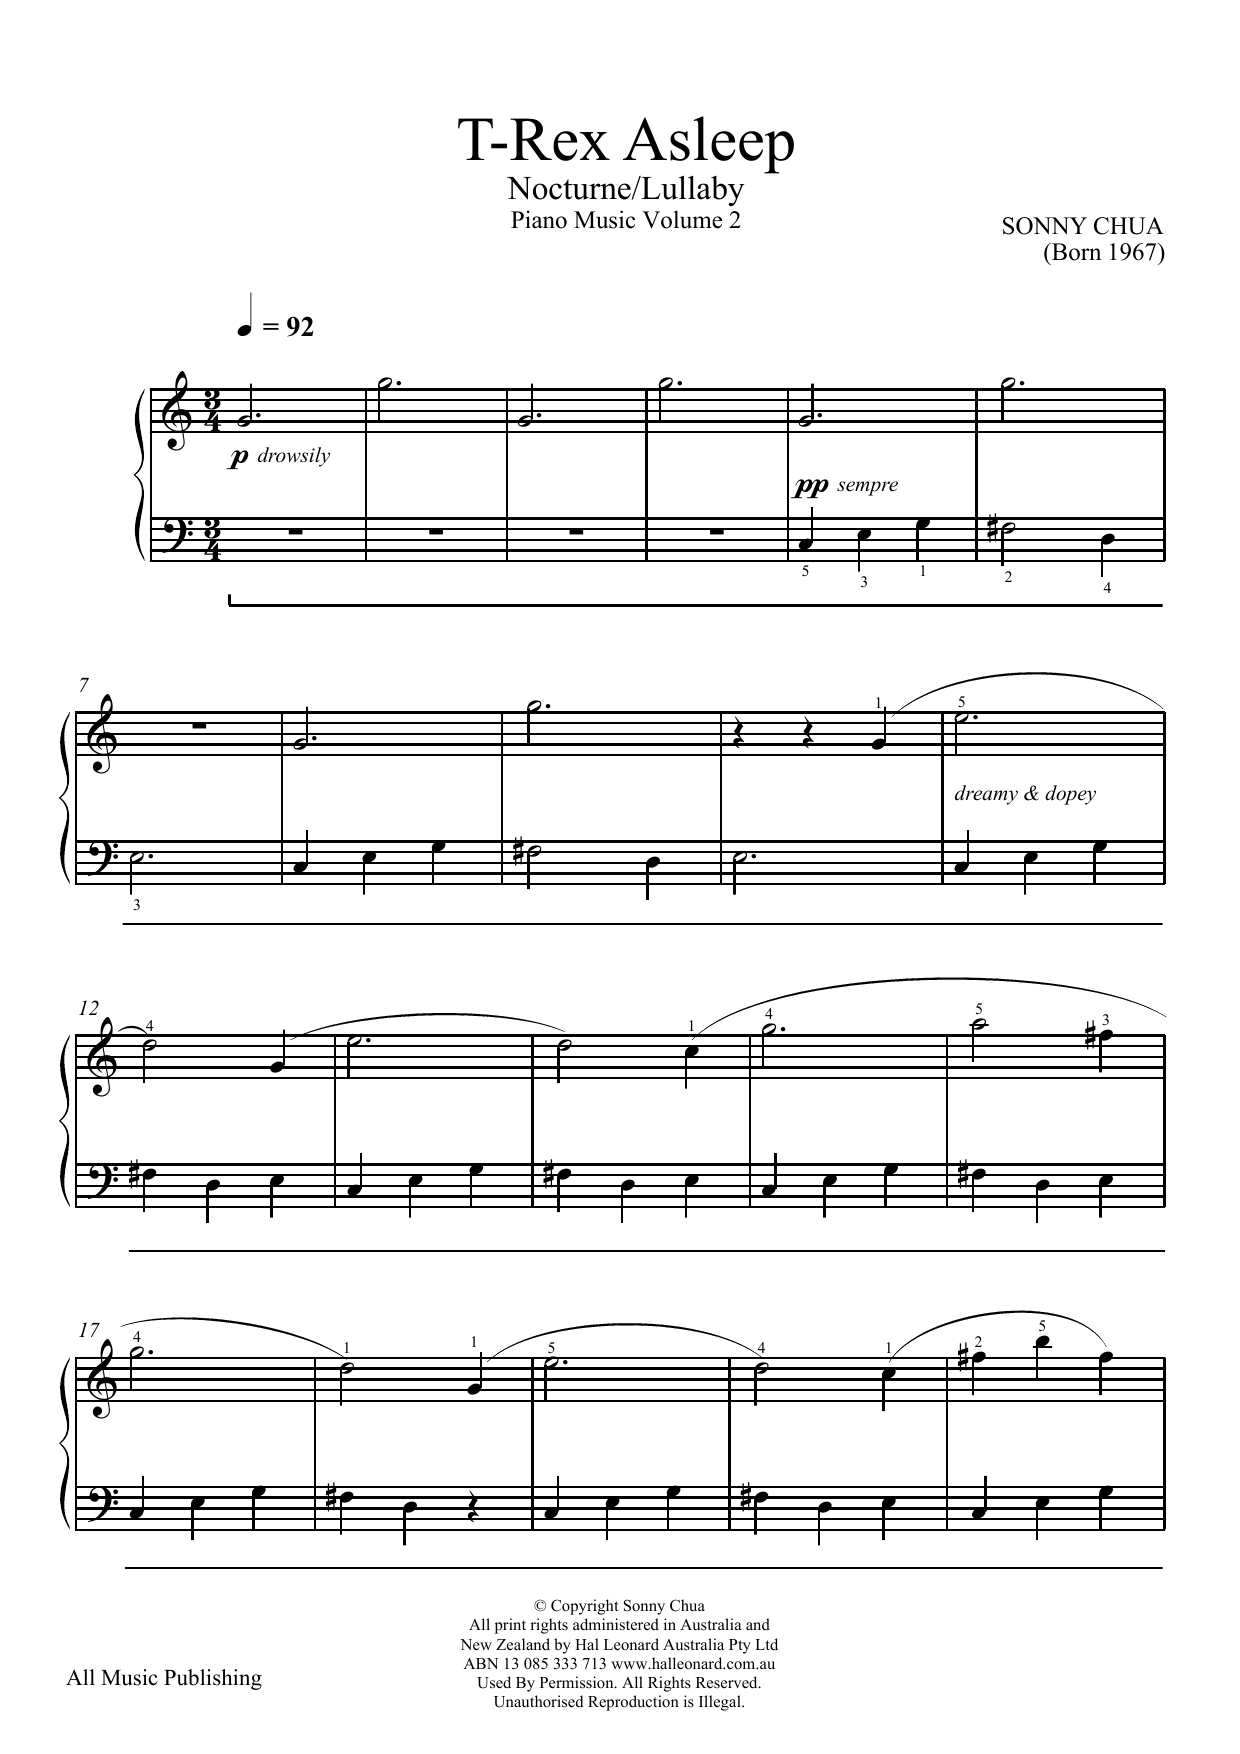 T-Rex Asleep (From Piano Music Vol 2) (Piano Solo)